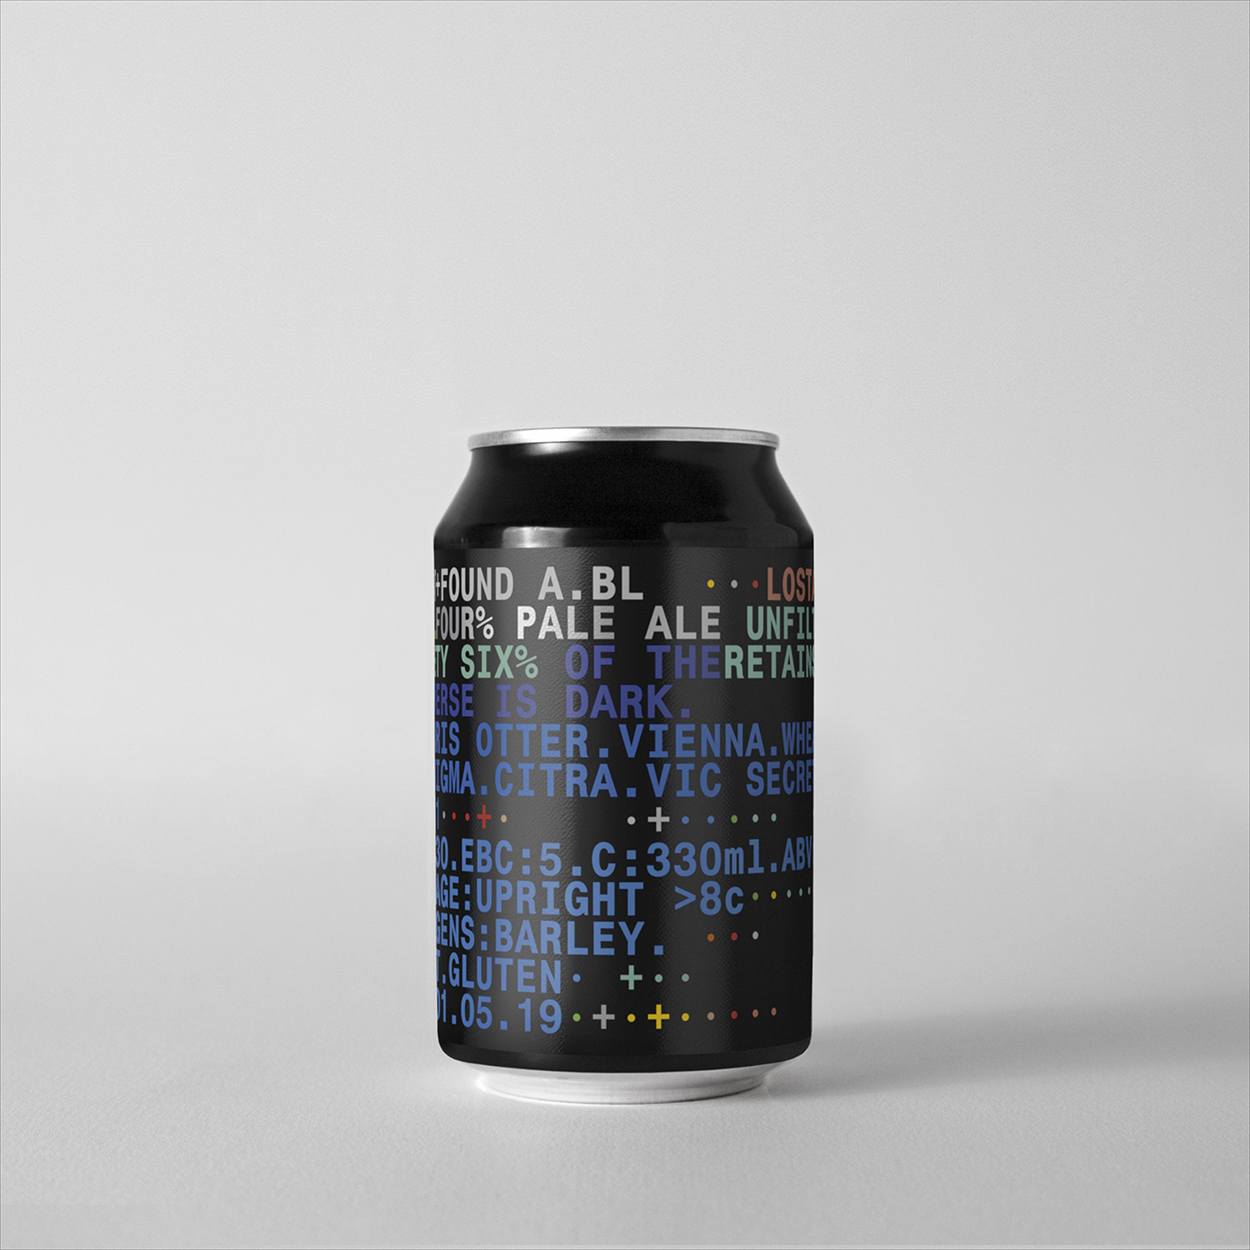 R31. 96% of the universe is dark. FOUR% Pale Ale.